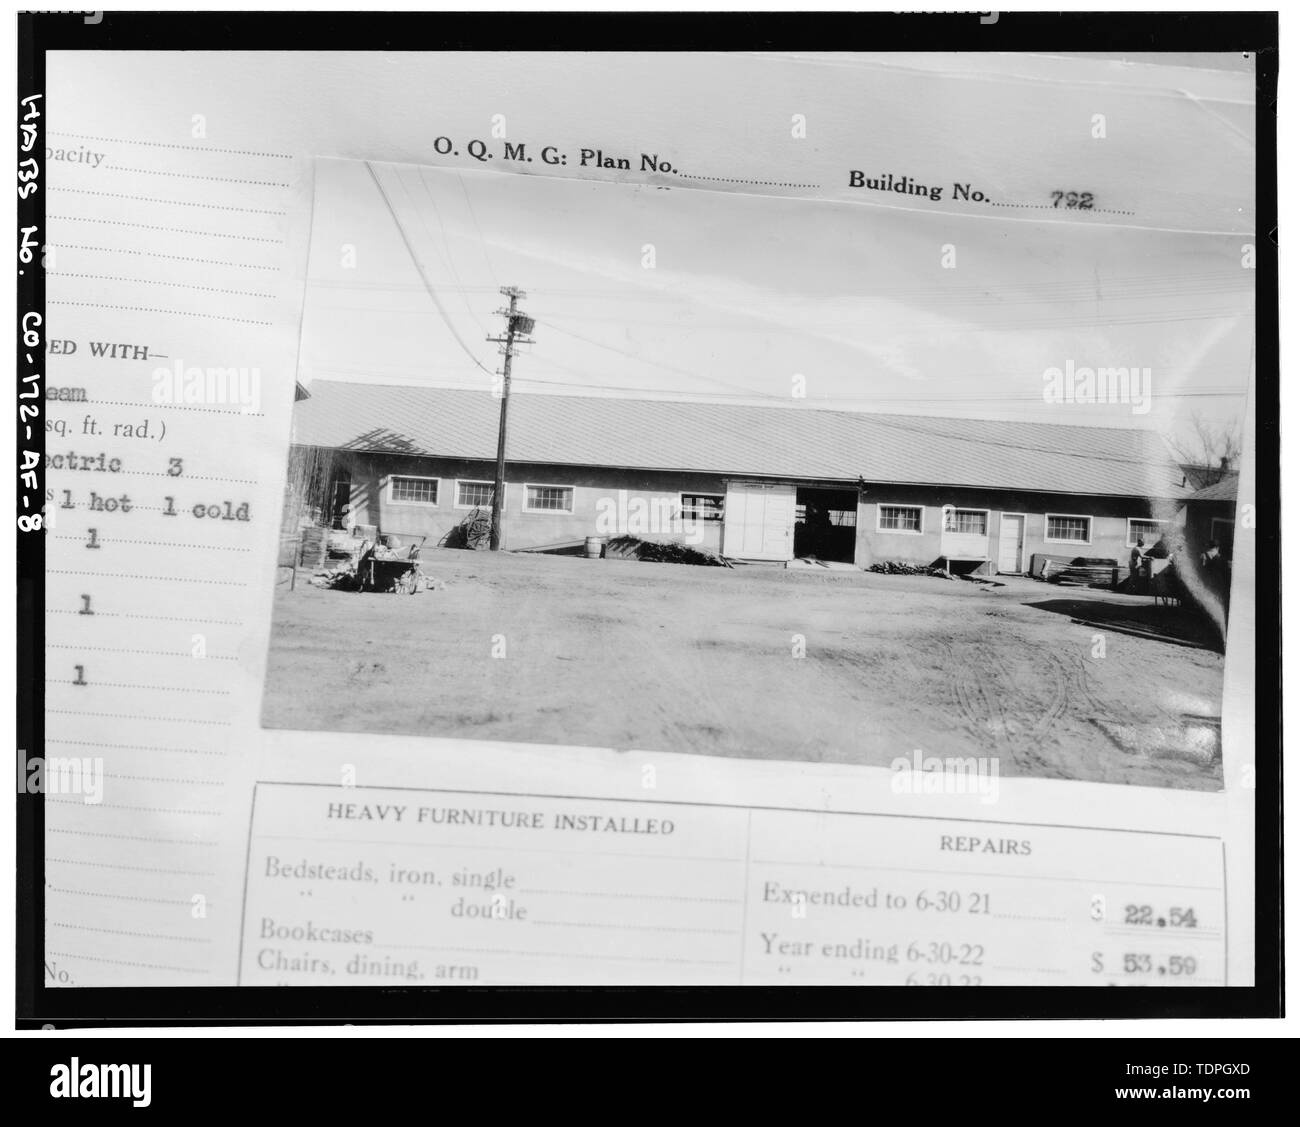 df0195dcd6829 in Fitzsimons Army Medical Center Real Property Book (green cloth cover).  Photograph of south side before perpendicular wing added.